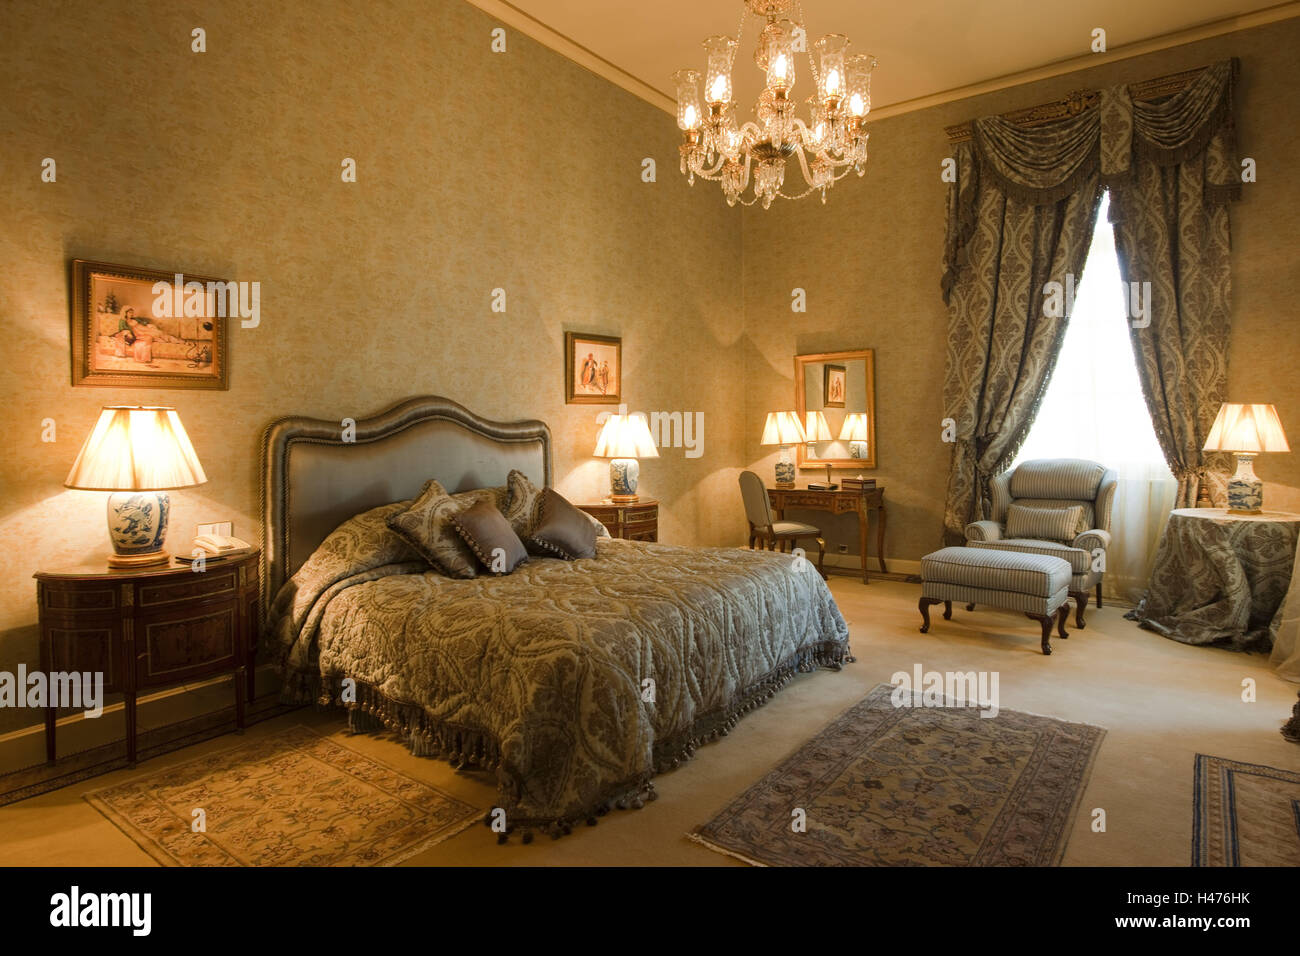 Luxor One Bedroom Luxury Suite Egypt Luxor Sofitel Winter Palace Luxor Traditional Five Star